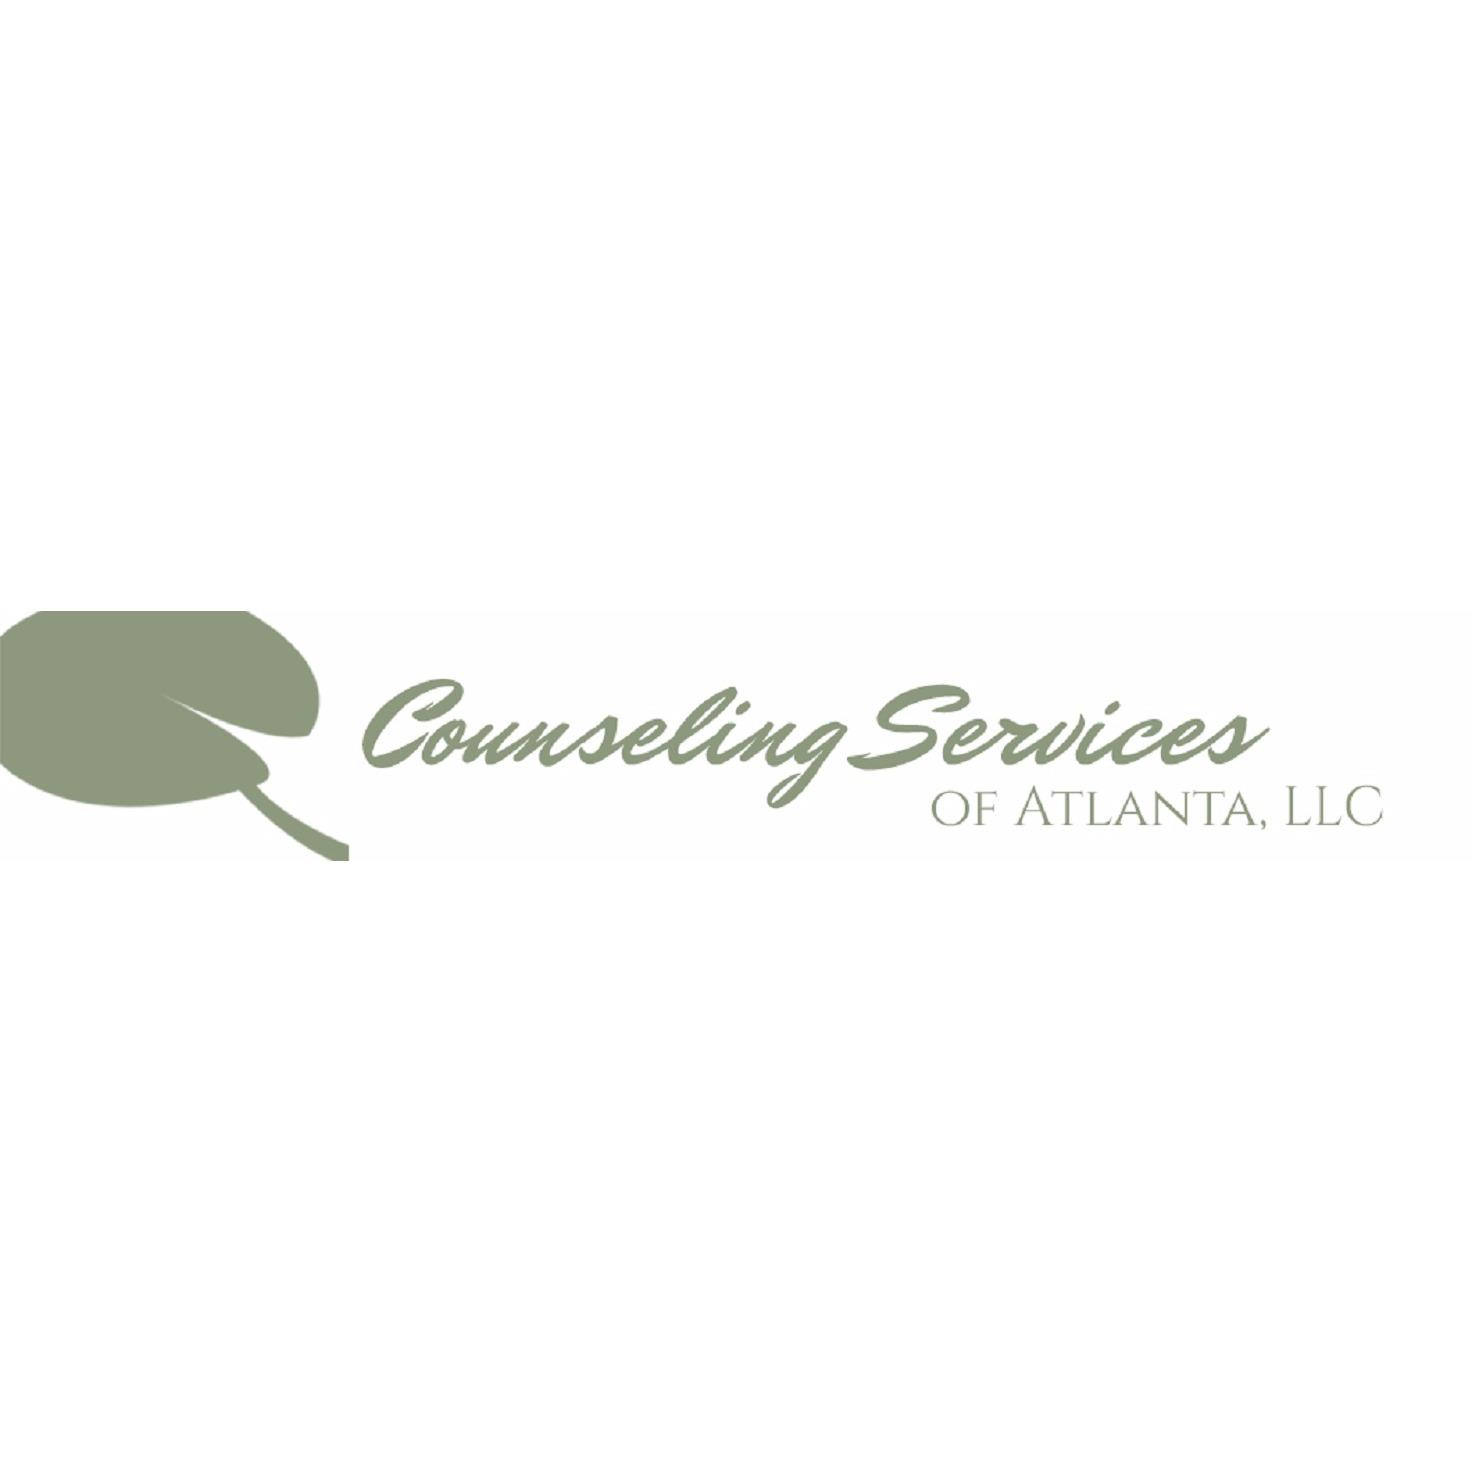 Counseling Services of Atlanta, LLC - Norcross/Peachtree Corner